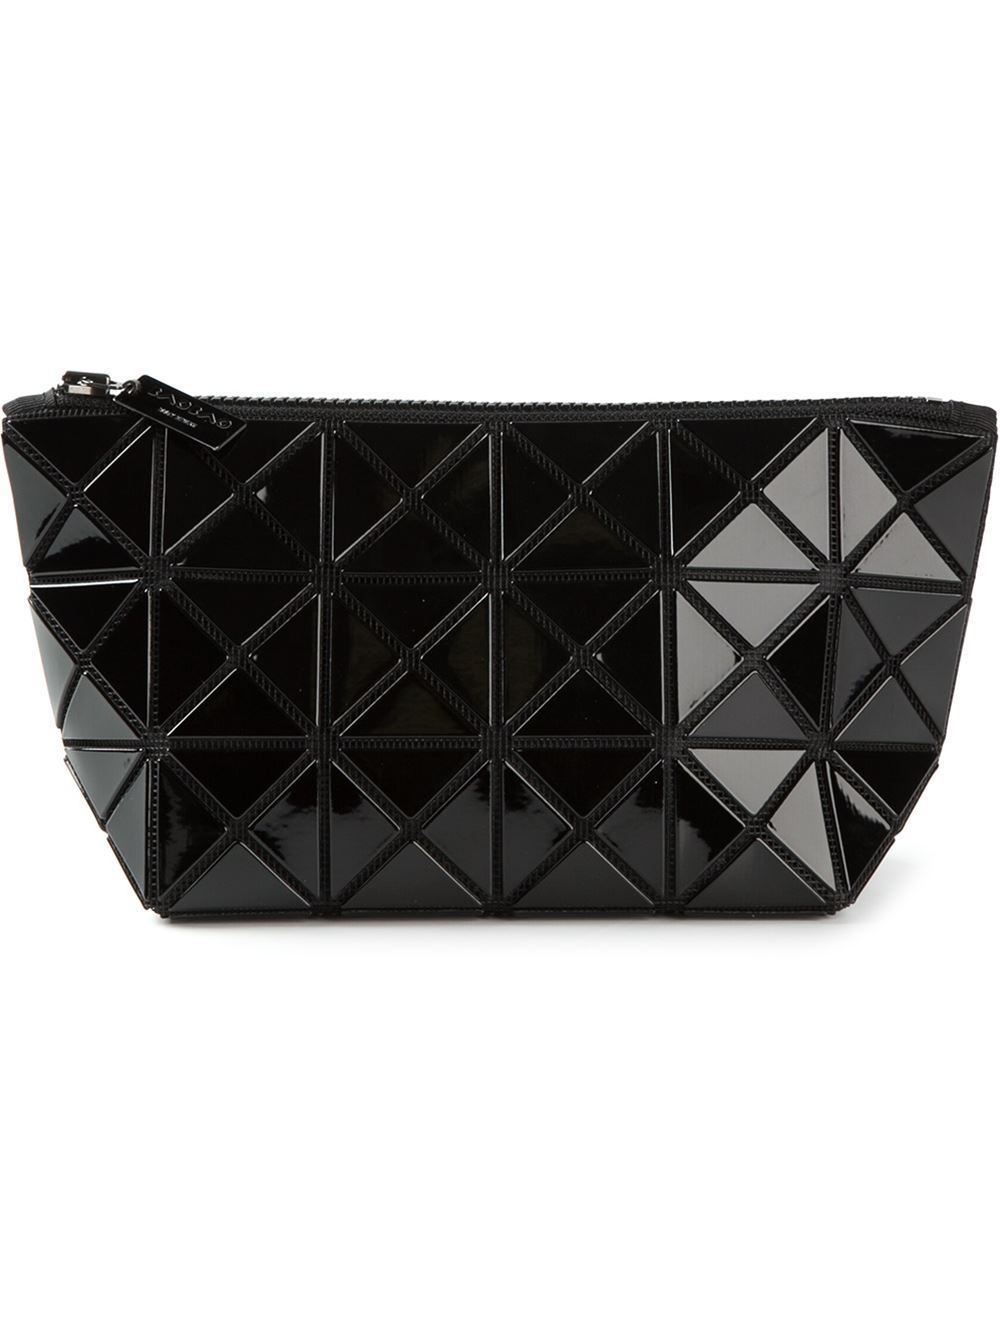 Lucent clutch - Black Bao Bao Issey Miyake New Arrival For Sale CJhNQT